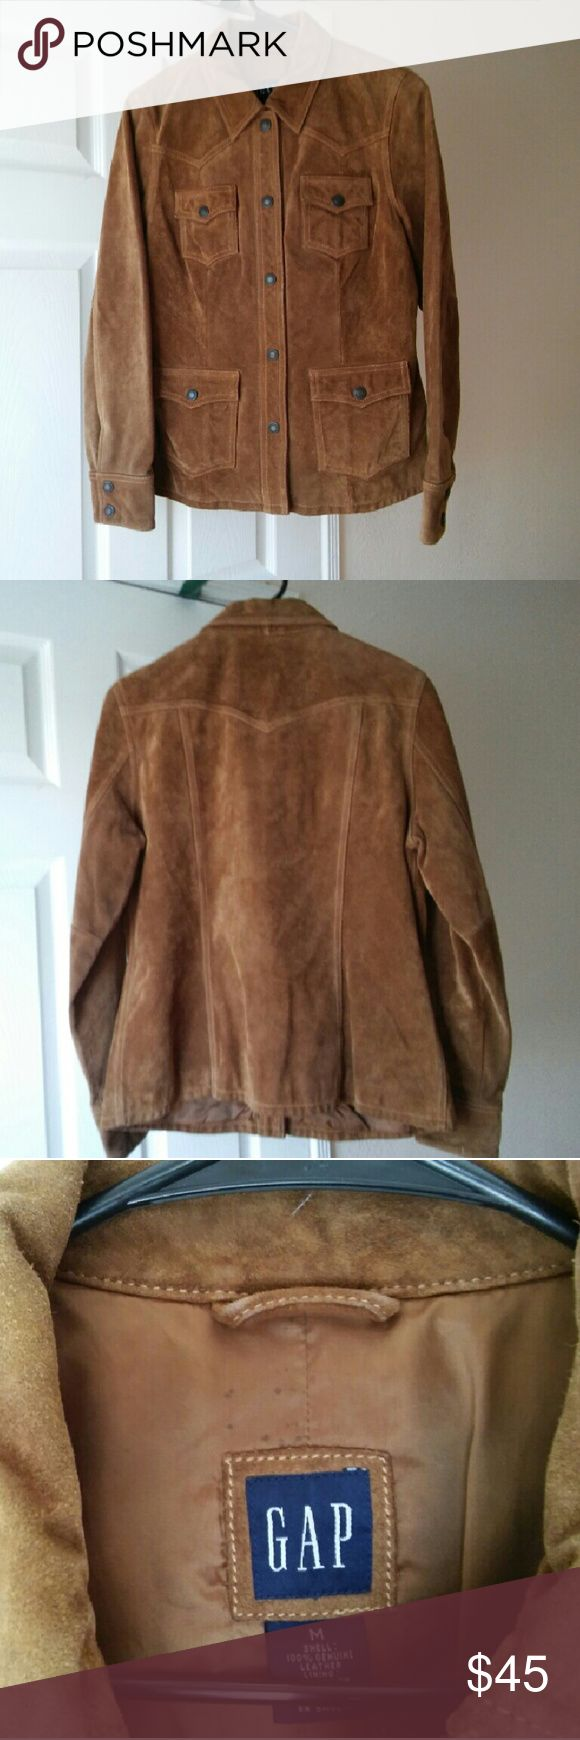 GAP Brown suede Leather Jacket M Jacket in pre-owned good condition. GAP Jackets & Coats